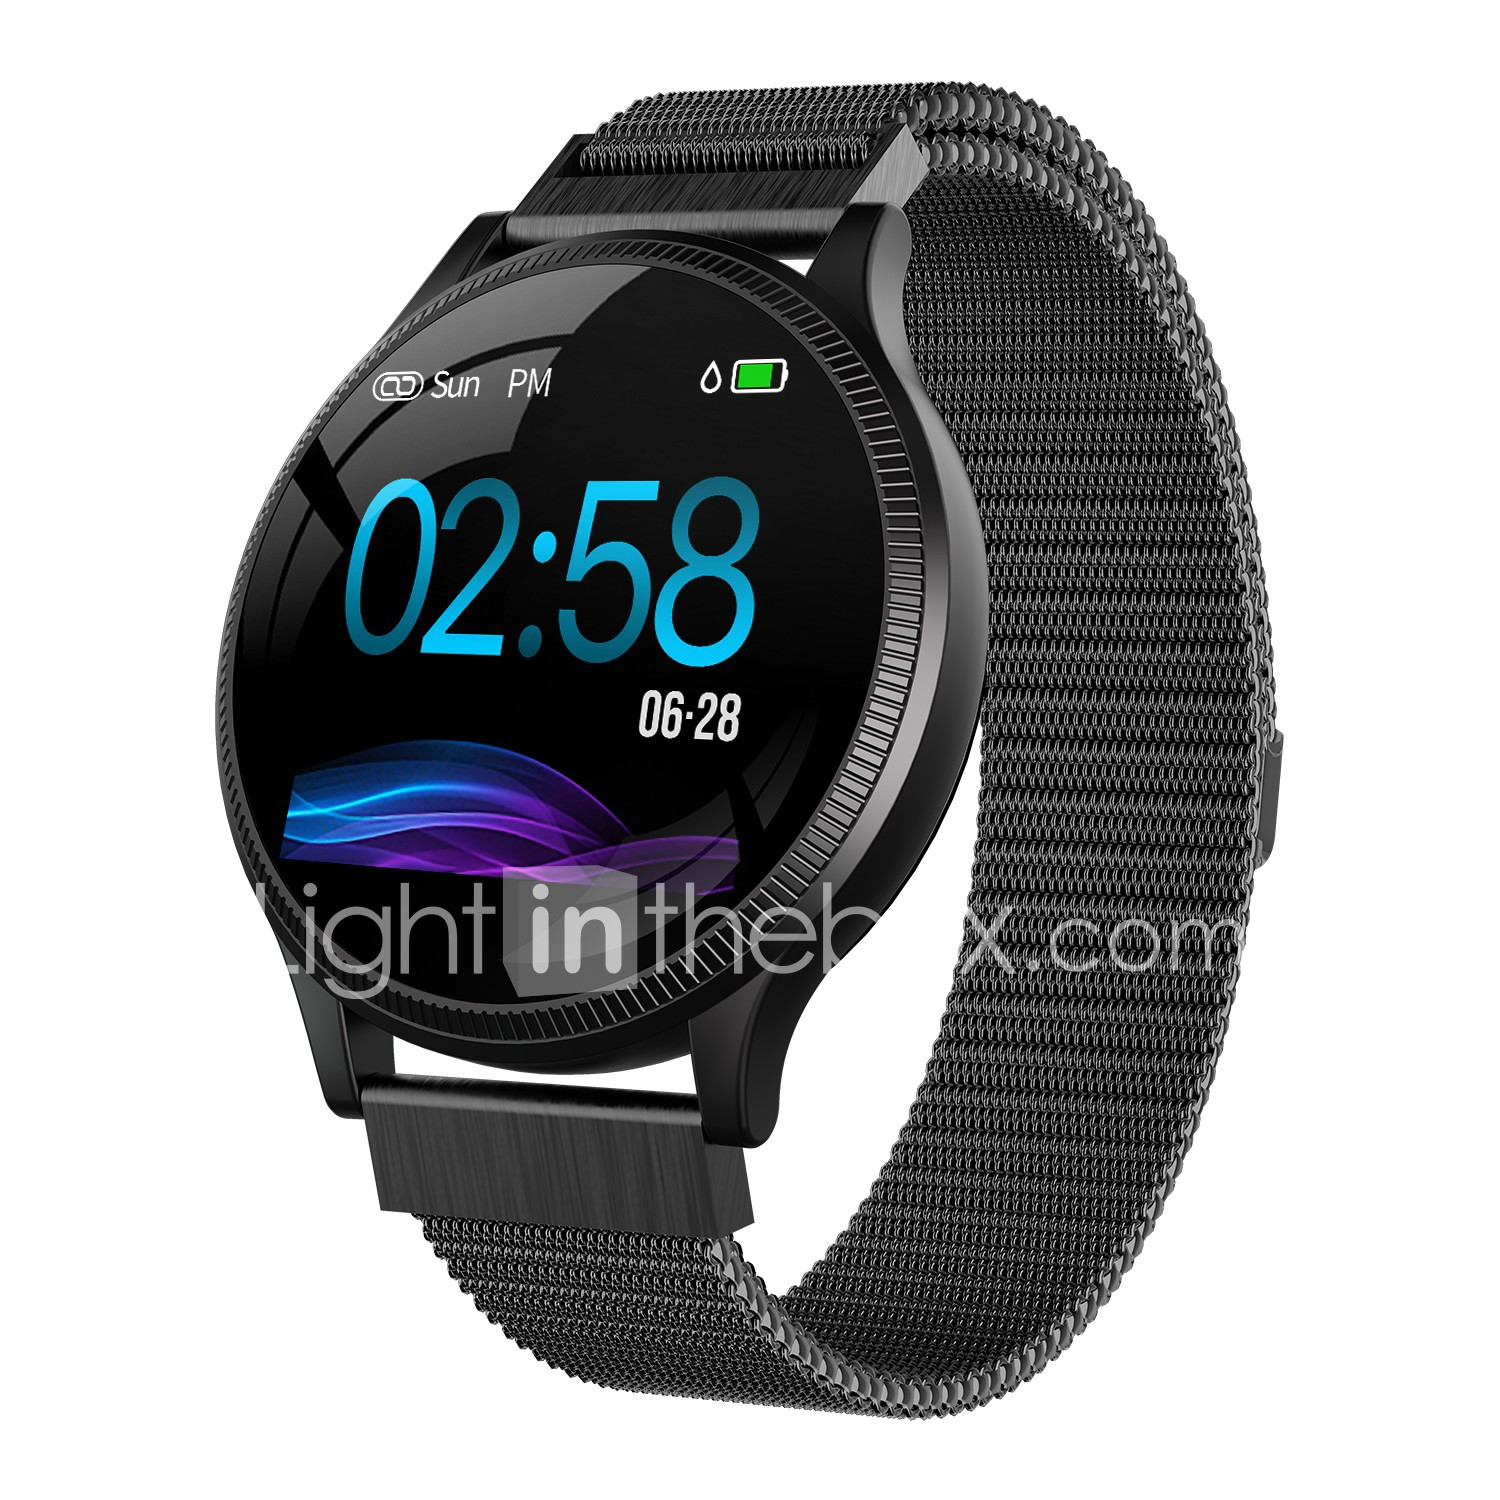 bbb481bc6a2b Indear MK08 Men Women Smartwatch Android iOS Bluetooth Smart Sports  Waterproof Heart Rate Monitor Blood Pressure Measurement Pedometer Call  Reminder ...